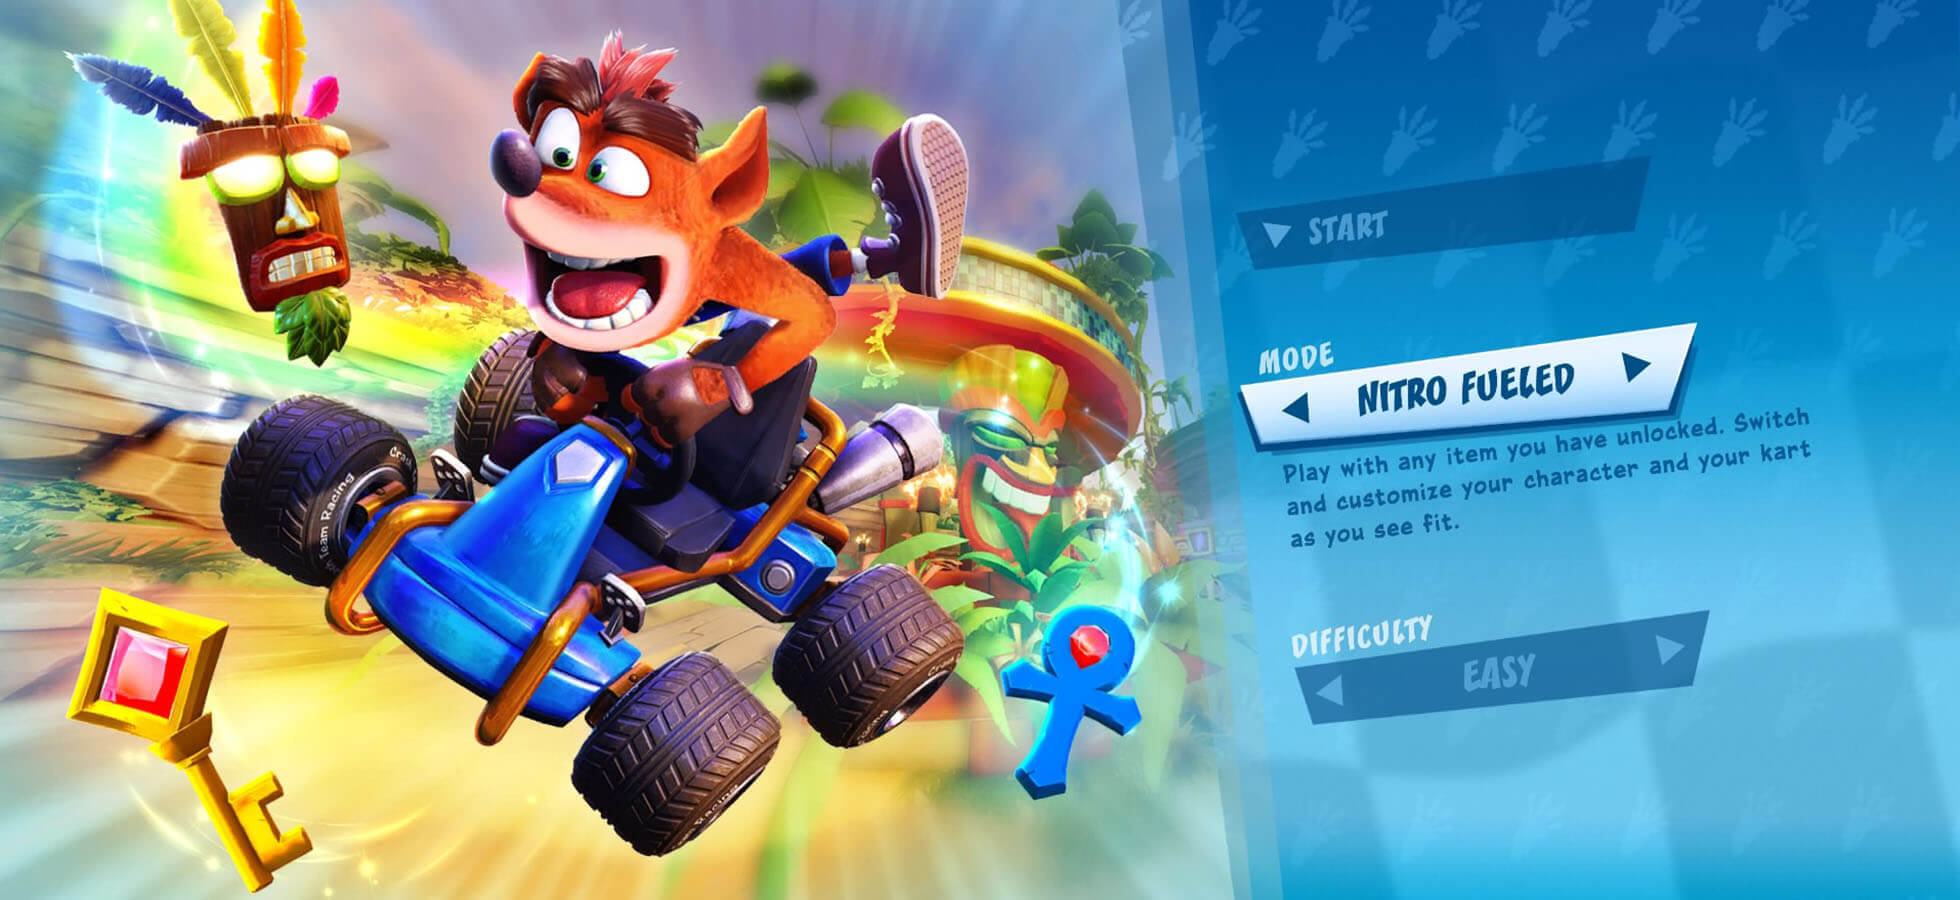 1 Play through the adventure mode in Classic or Nitro-Fueled